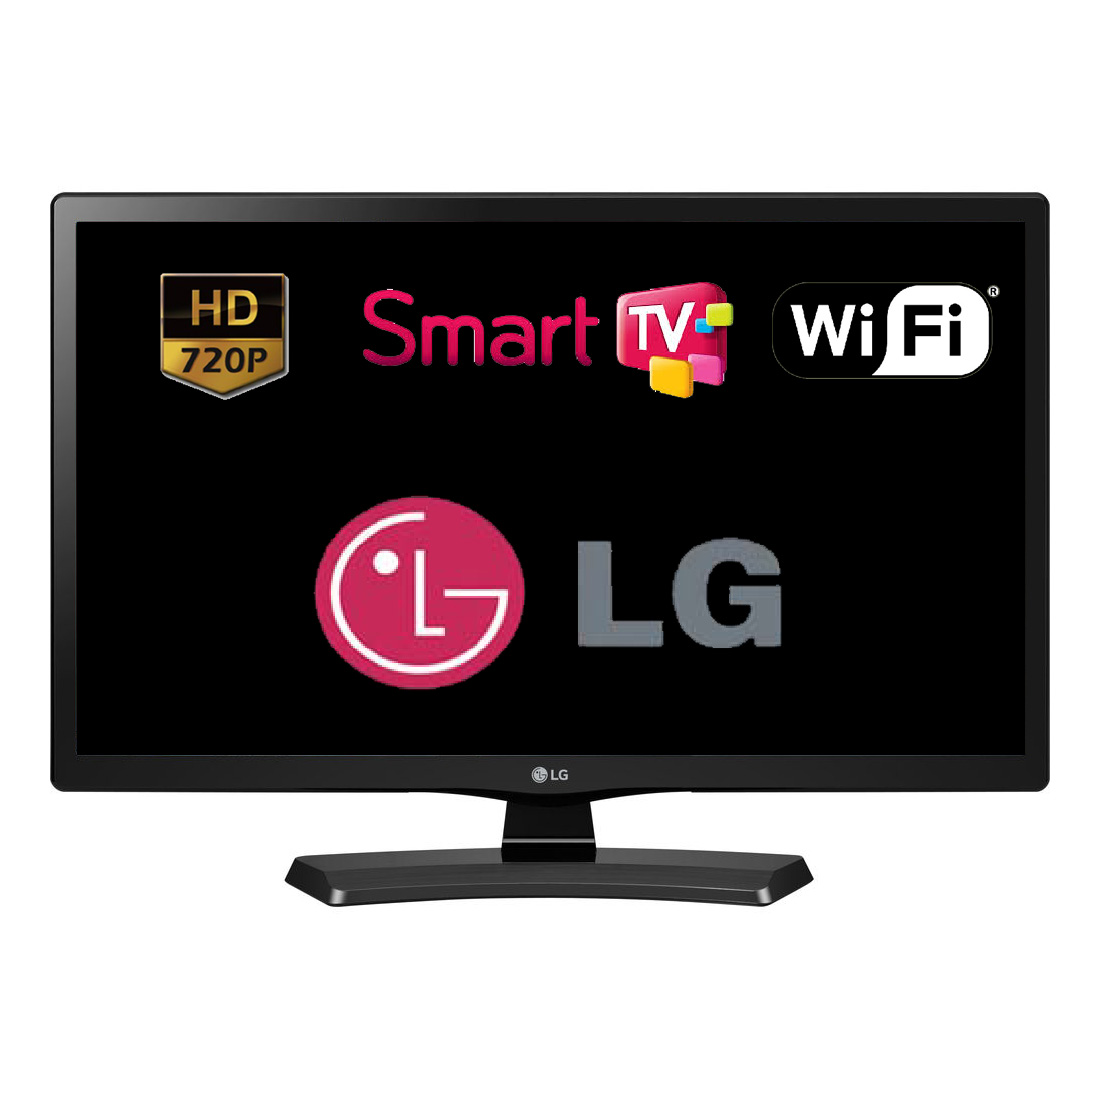 lg 28mt48s 28 smart led tv hd ready 720p with freeview hd tuner hdmi wi fi ebay. Black Bedroom Furniture Sets. Home Design Ideas